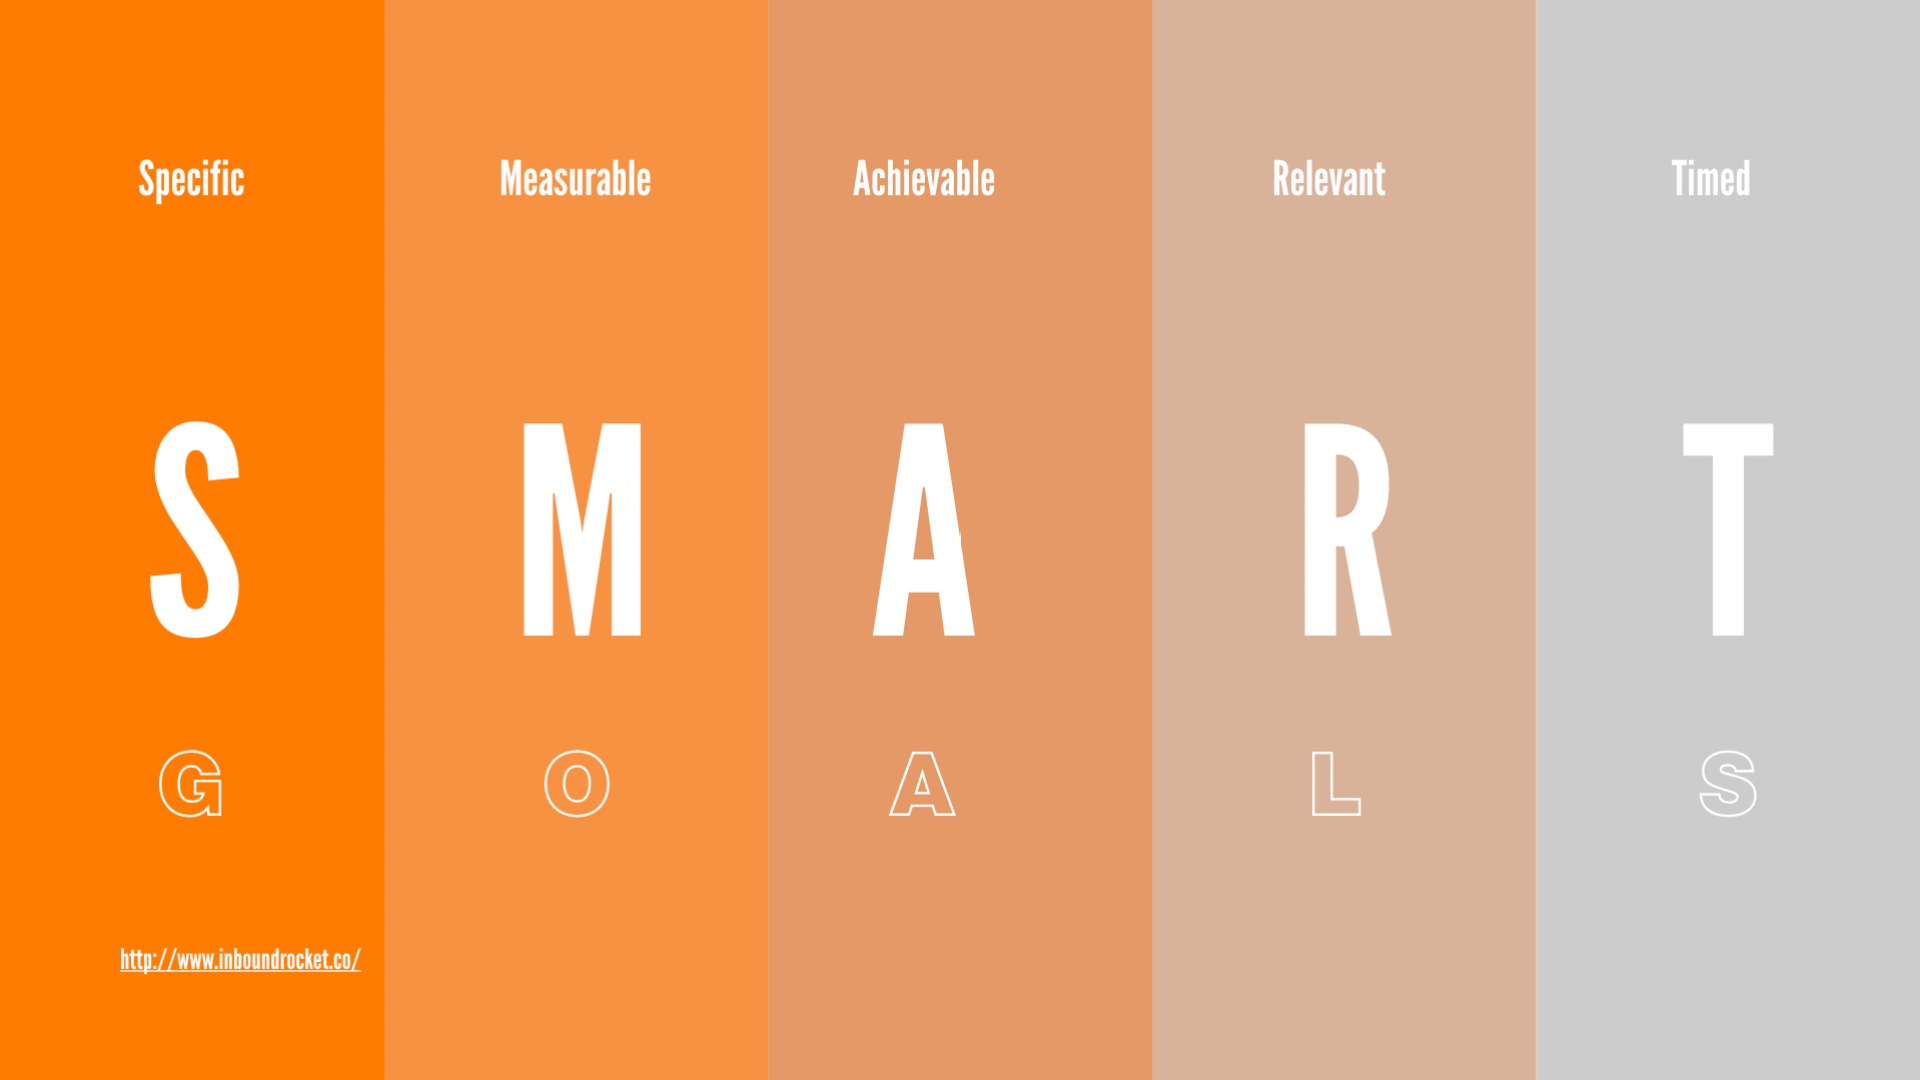 Setting up Specific, Measurable, Achievable, Relevant and Timed based goals (S.M.A.R.T Goals)